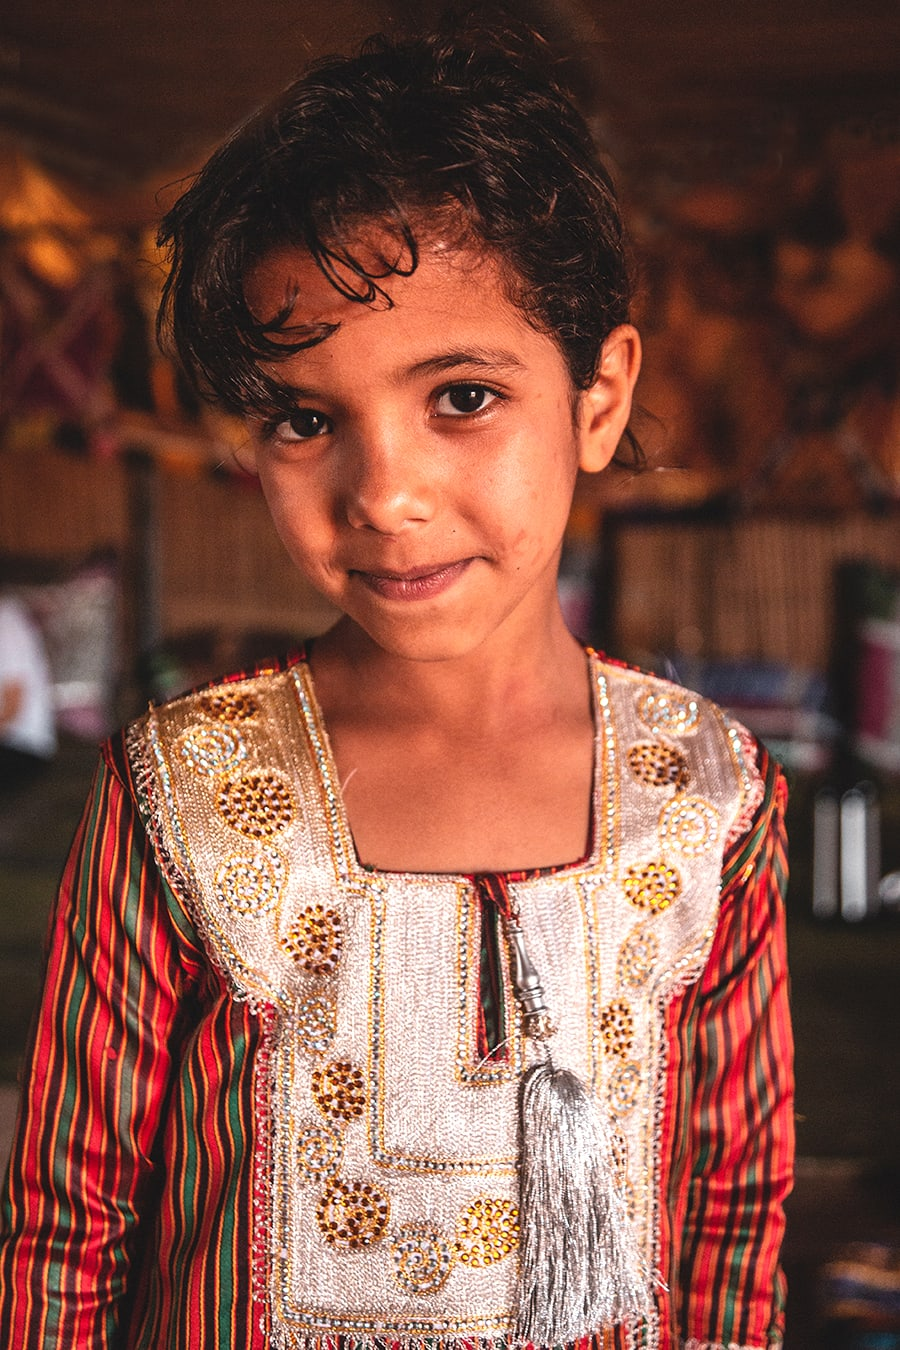 A bedouin girl in the Sharqiya Sands, also knowns as the Wahiba Sands.